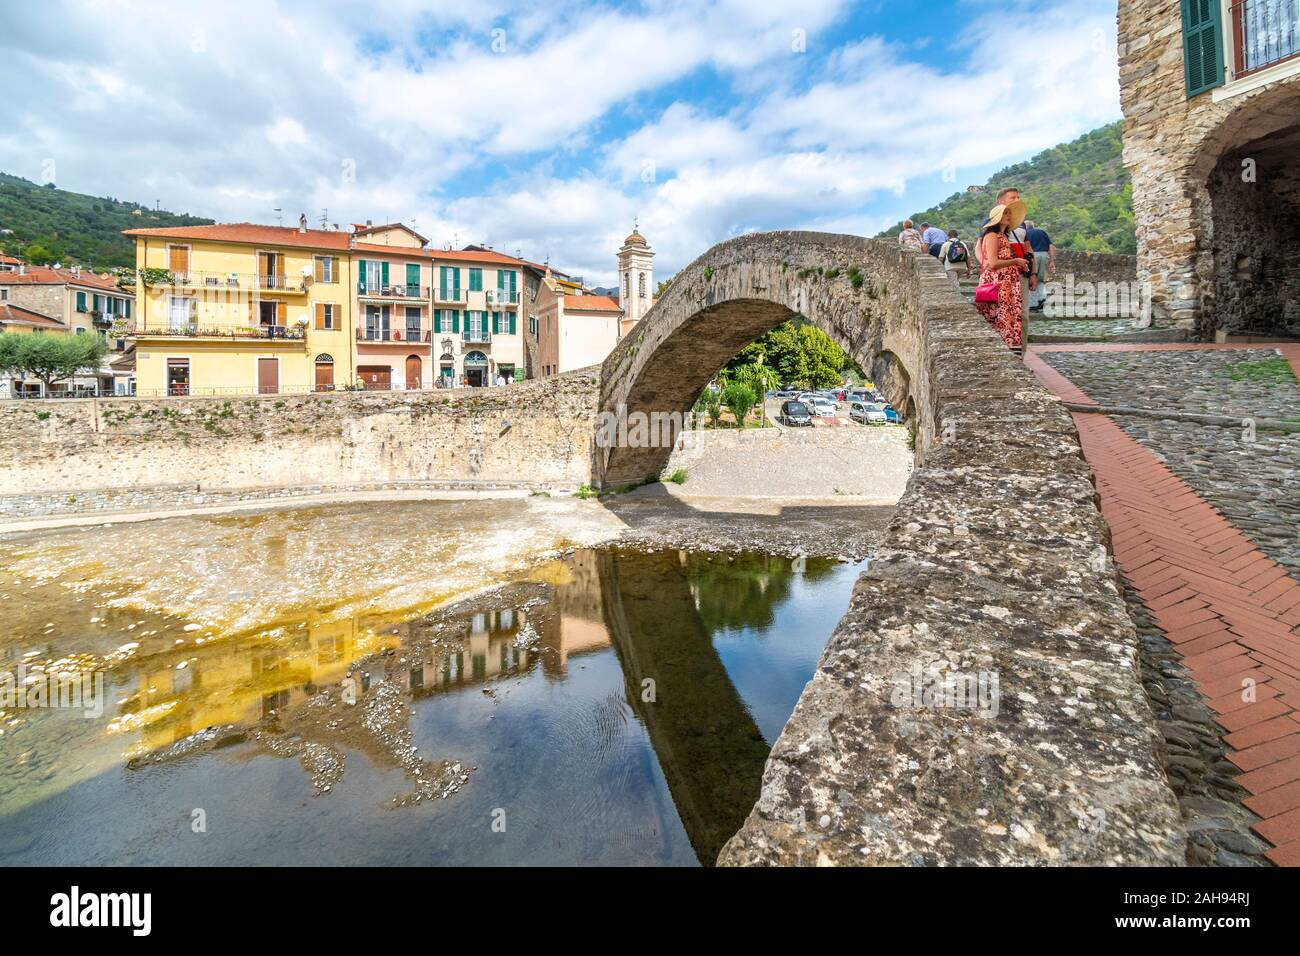 Tourists, including an attractive younger couple, sightsee near the Monet arched bridge in the medieval village of Dolceacqua, Italy. Stock Photo